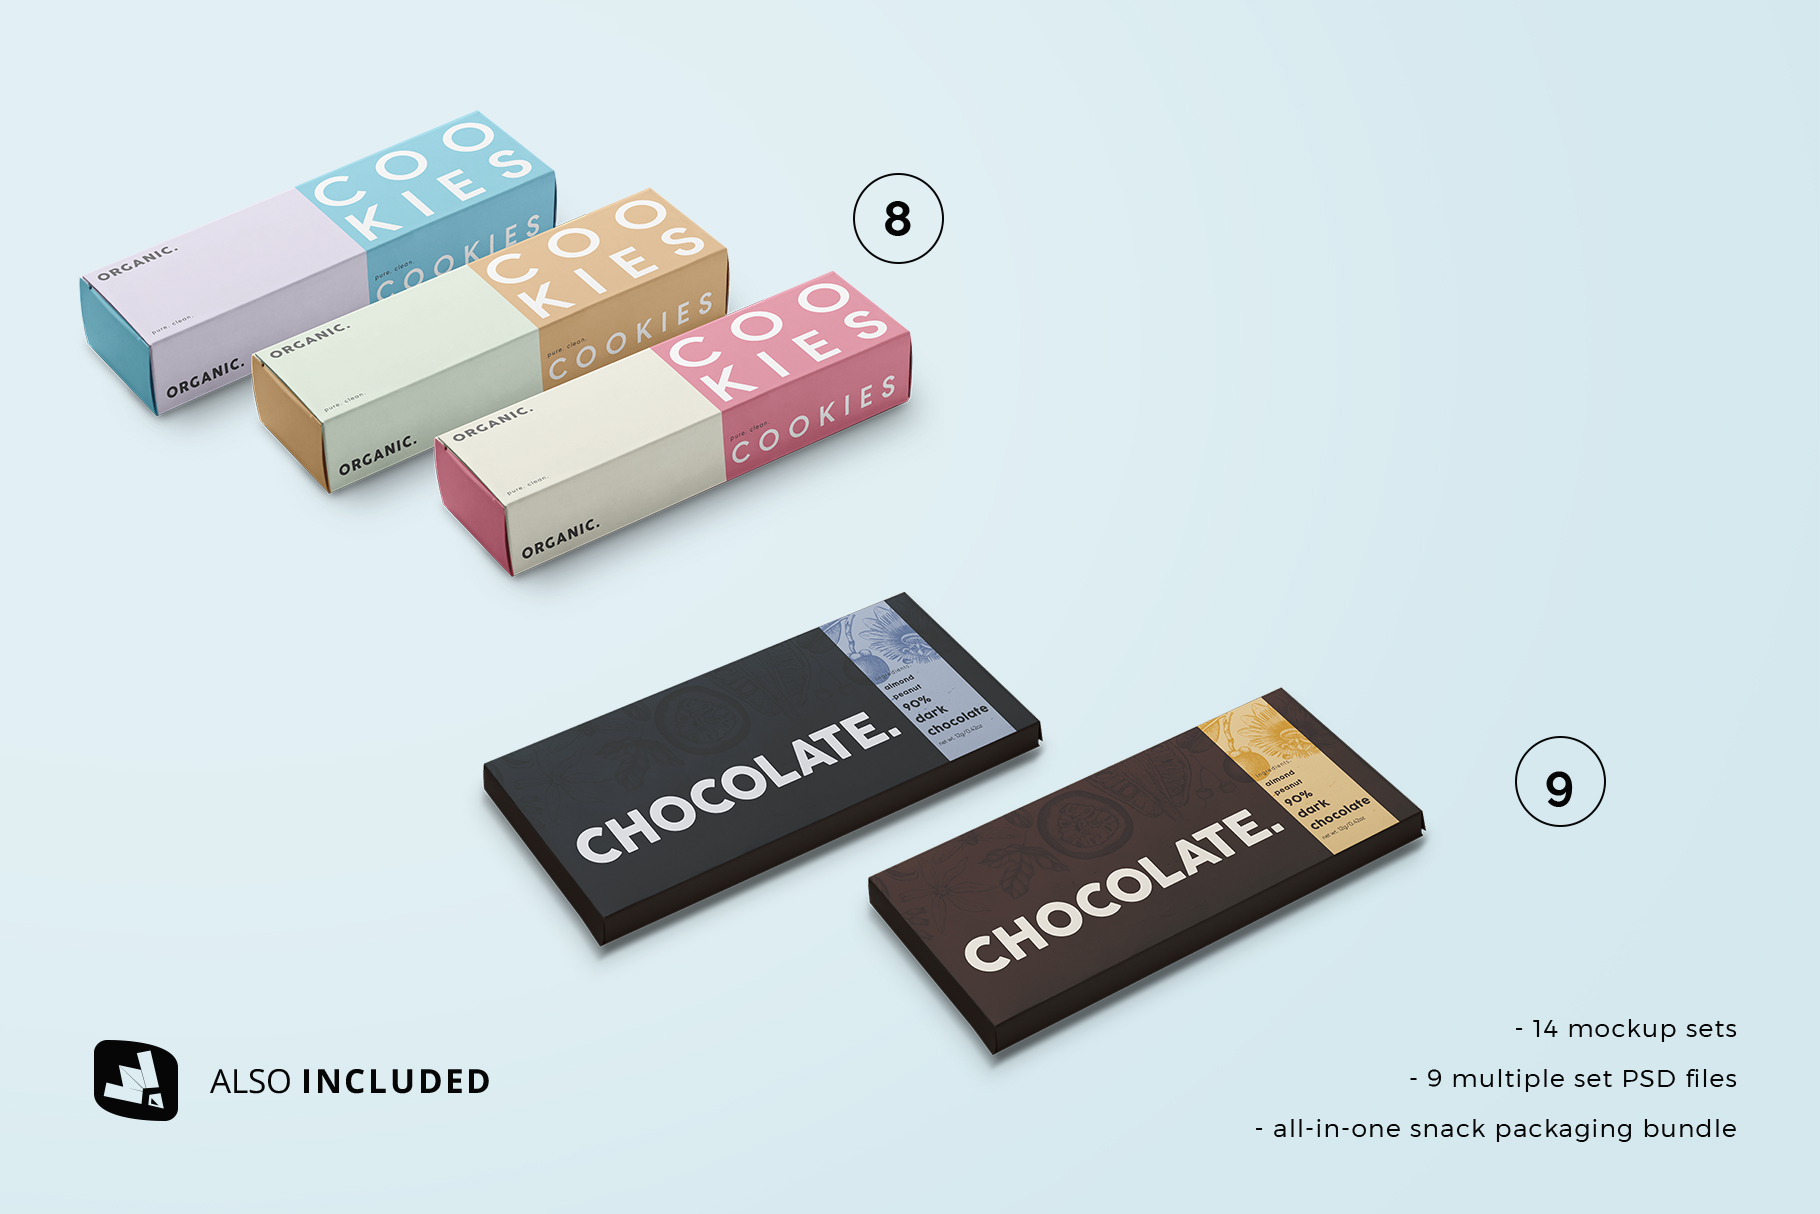 two set files included in the snack packaging mockup bundle